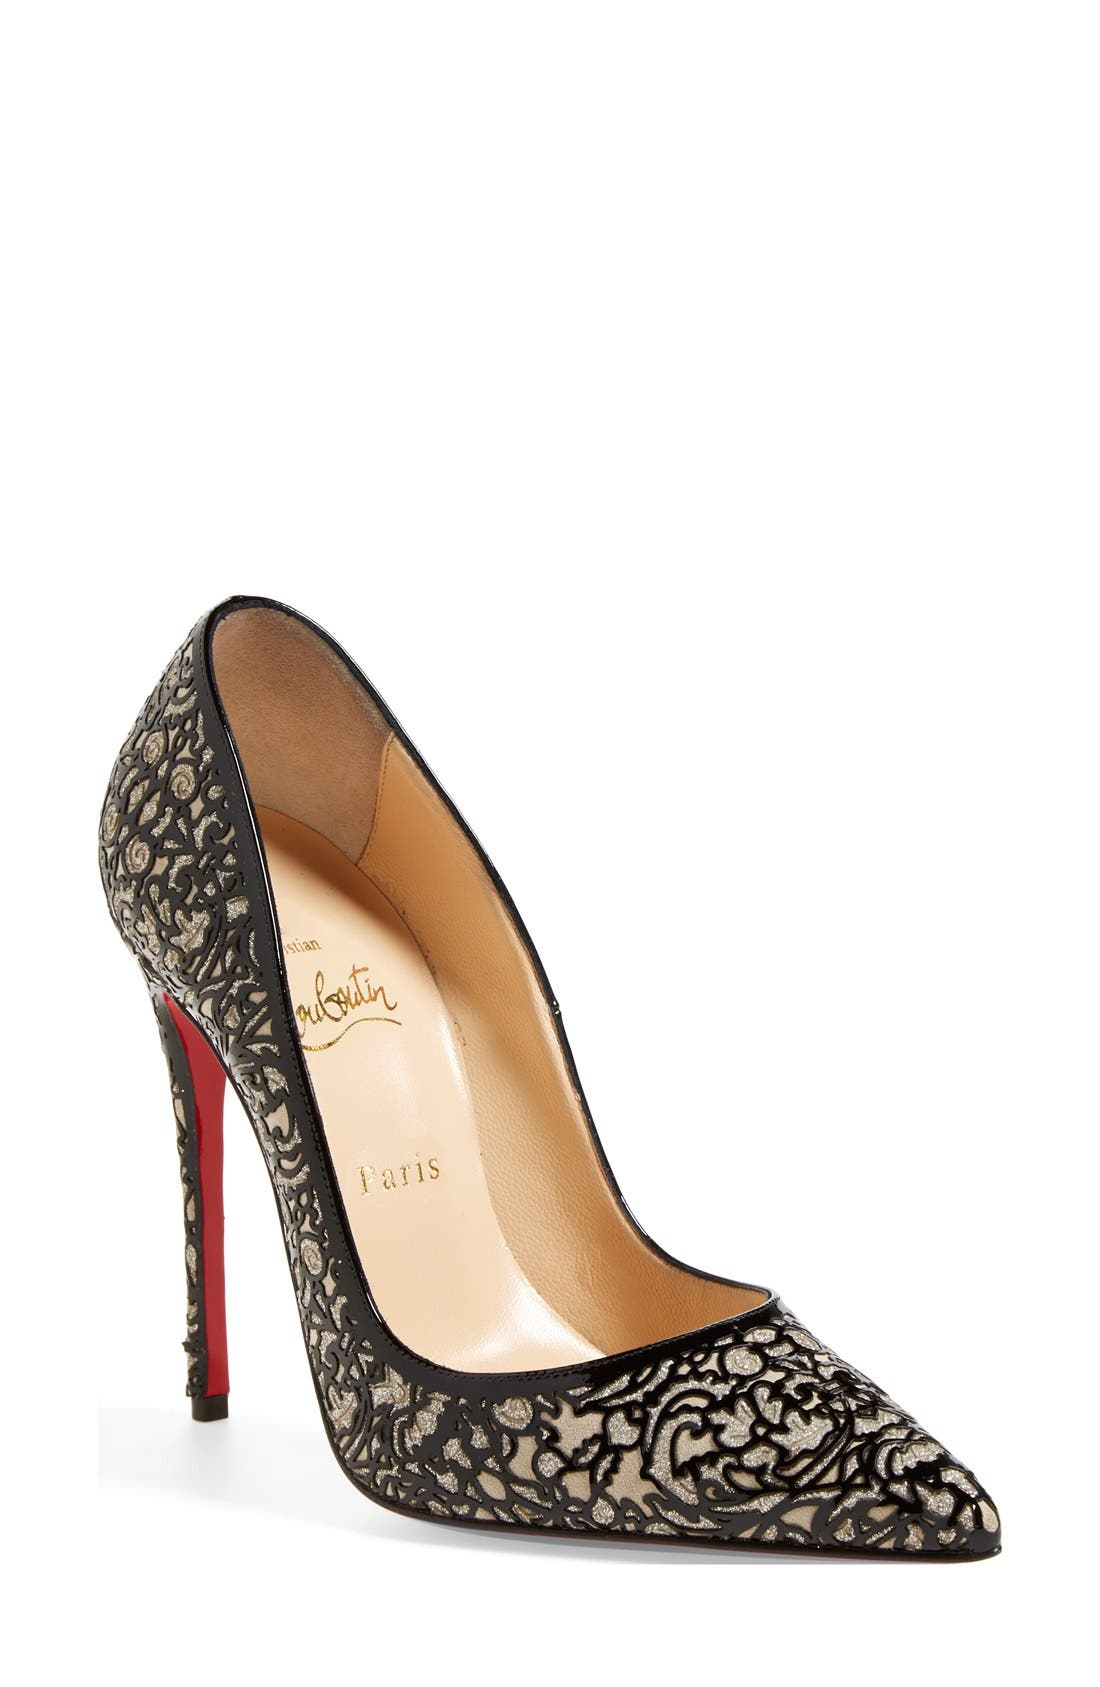 Alternate Image 1 Selected - Christian Louboutin 'So Pretty' Pointy Toe Pump